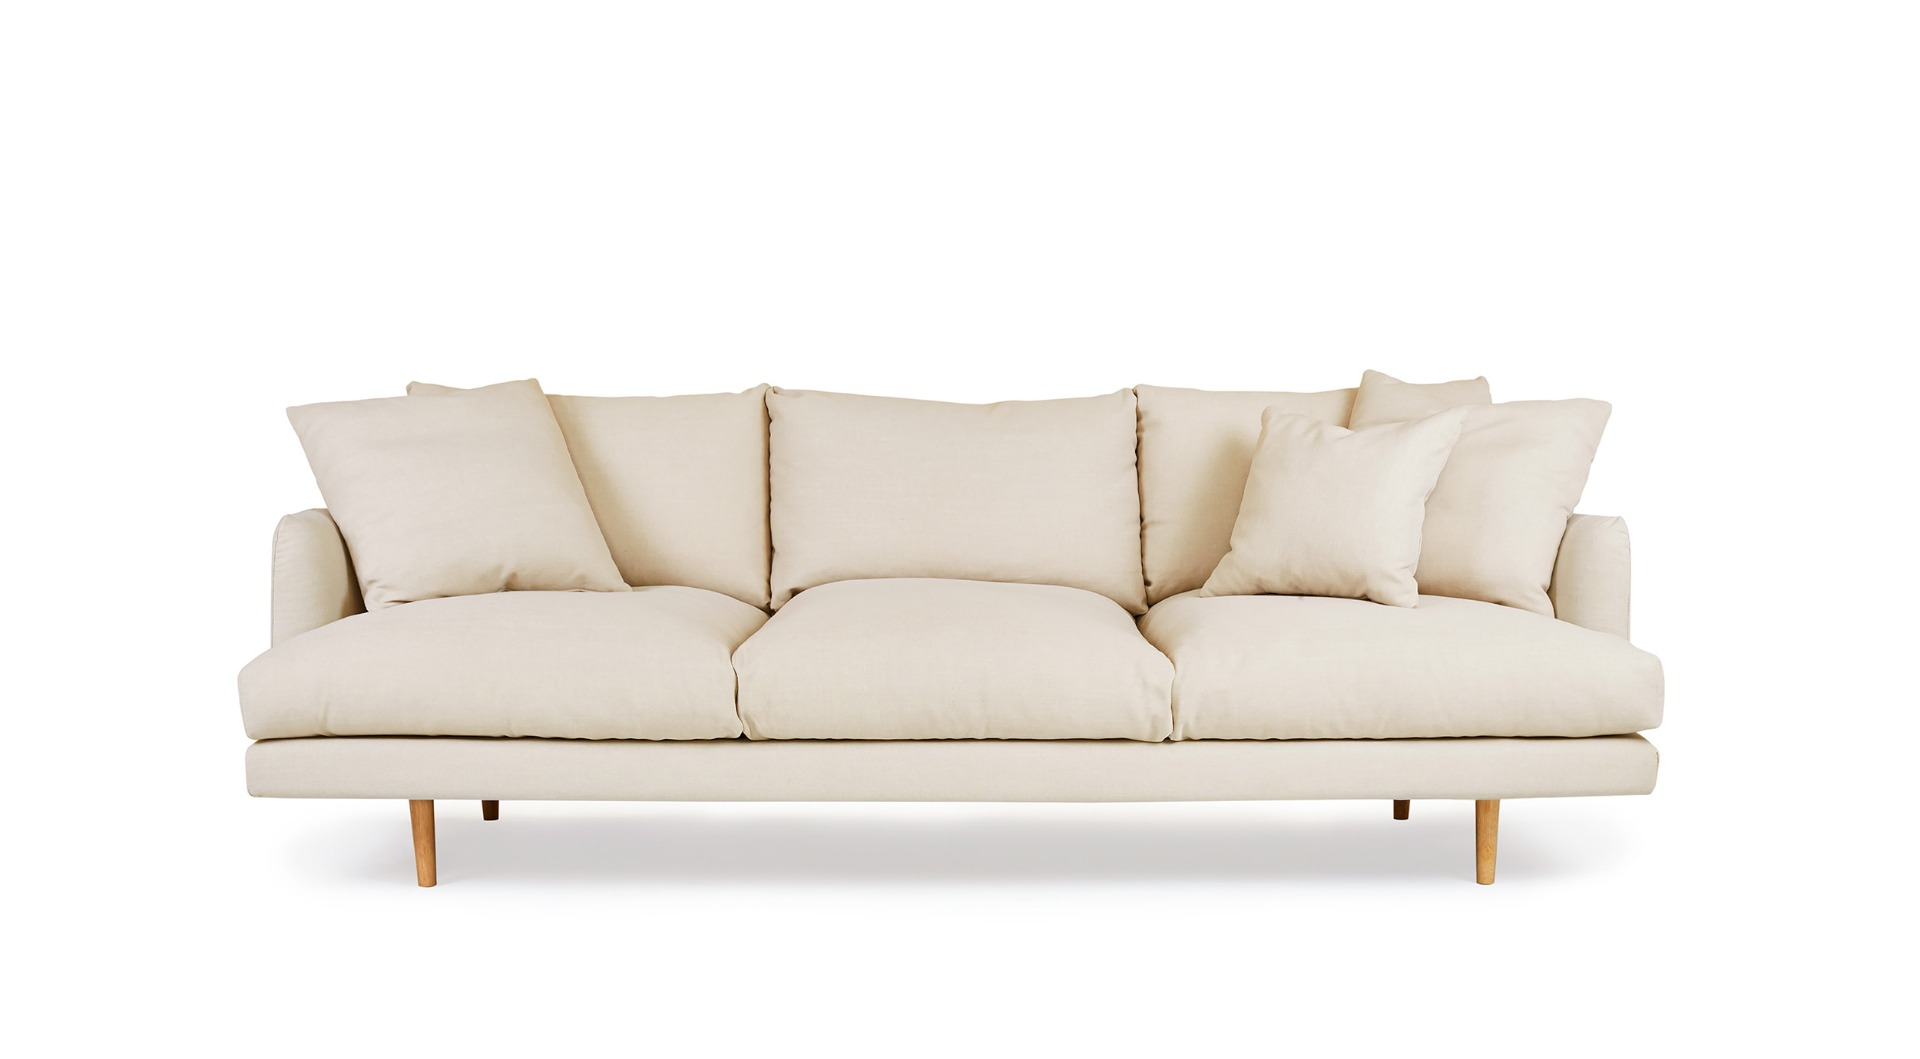 Hampton Coastal 4 Seat Sofa Beige Fabric by Lounge Lovers by Lounge Lovers, a Sofas for sale on Style Sourcebook